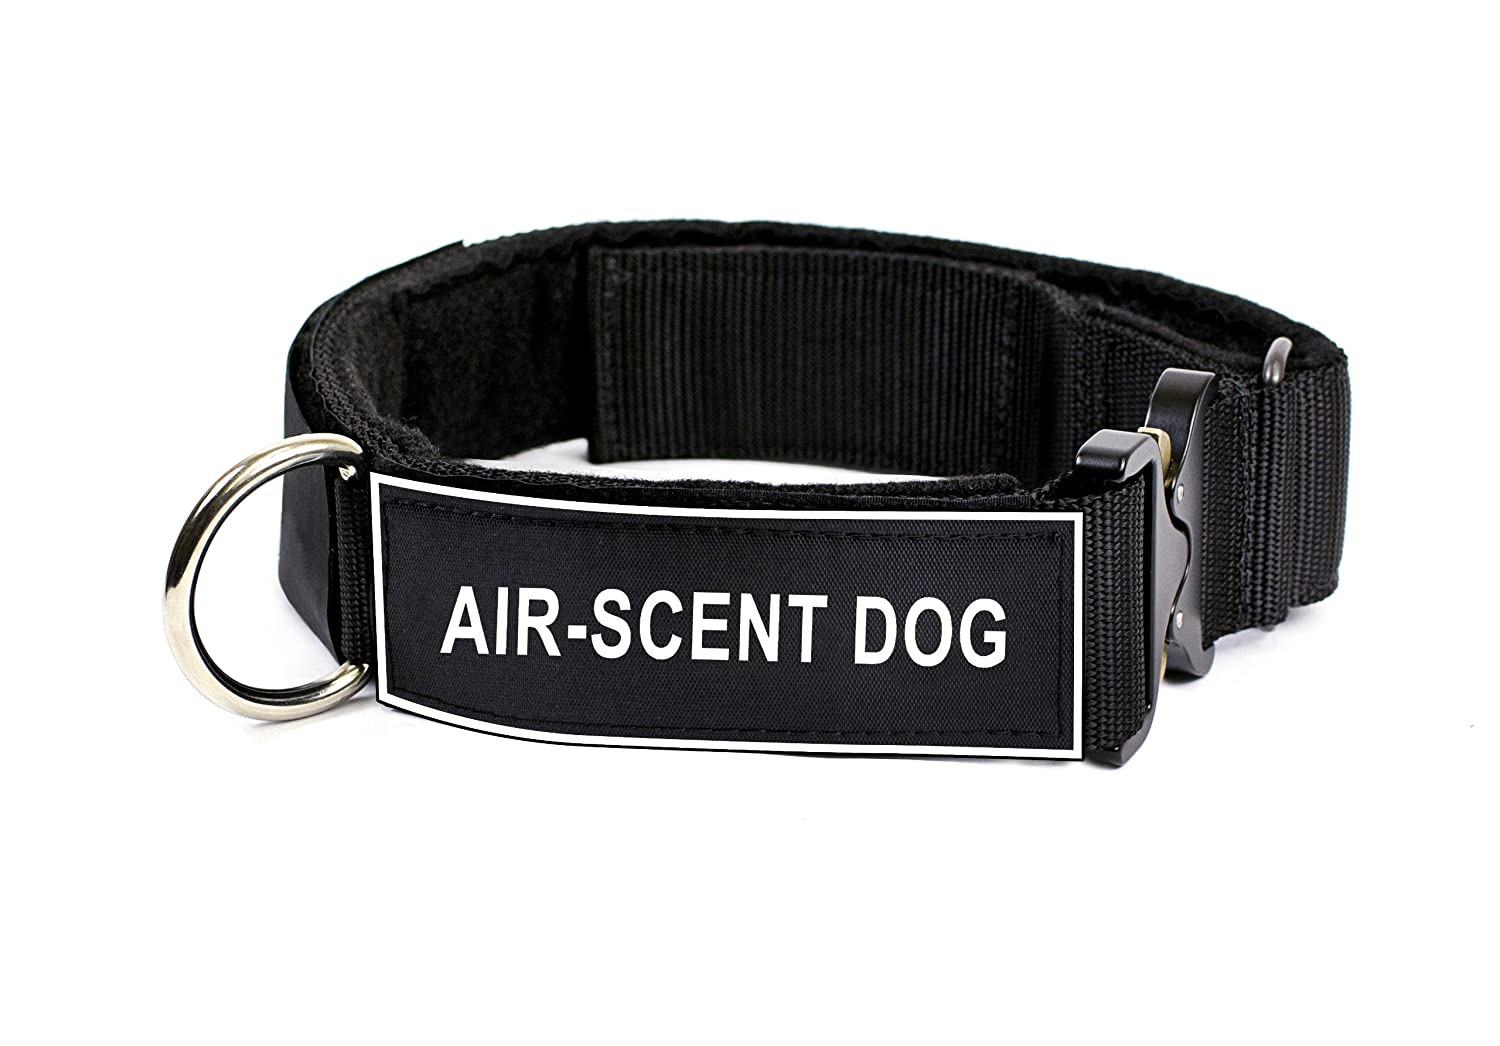 Dean & Tyler 26 to 37-Inch Strong Nylon Cobra Patch Collar With Felt Padding, Air-Scent Dog Patches, Large, Black